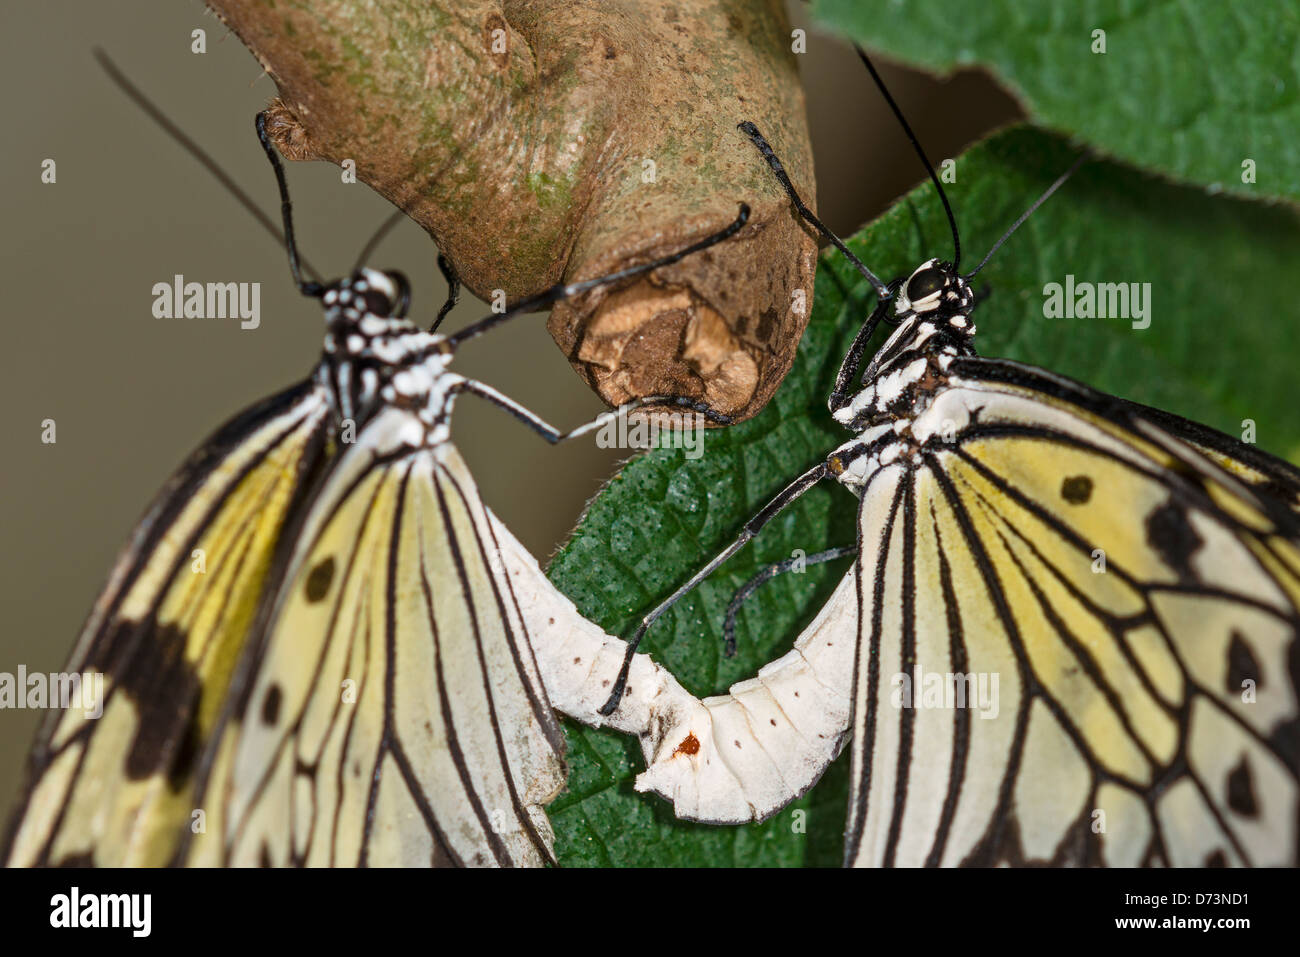 Great Tree Nymph butterflies mating - Stock Image